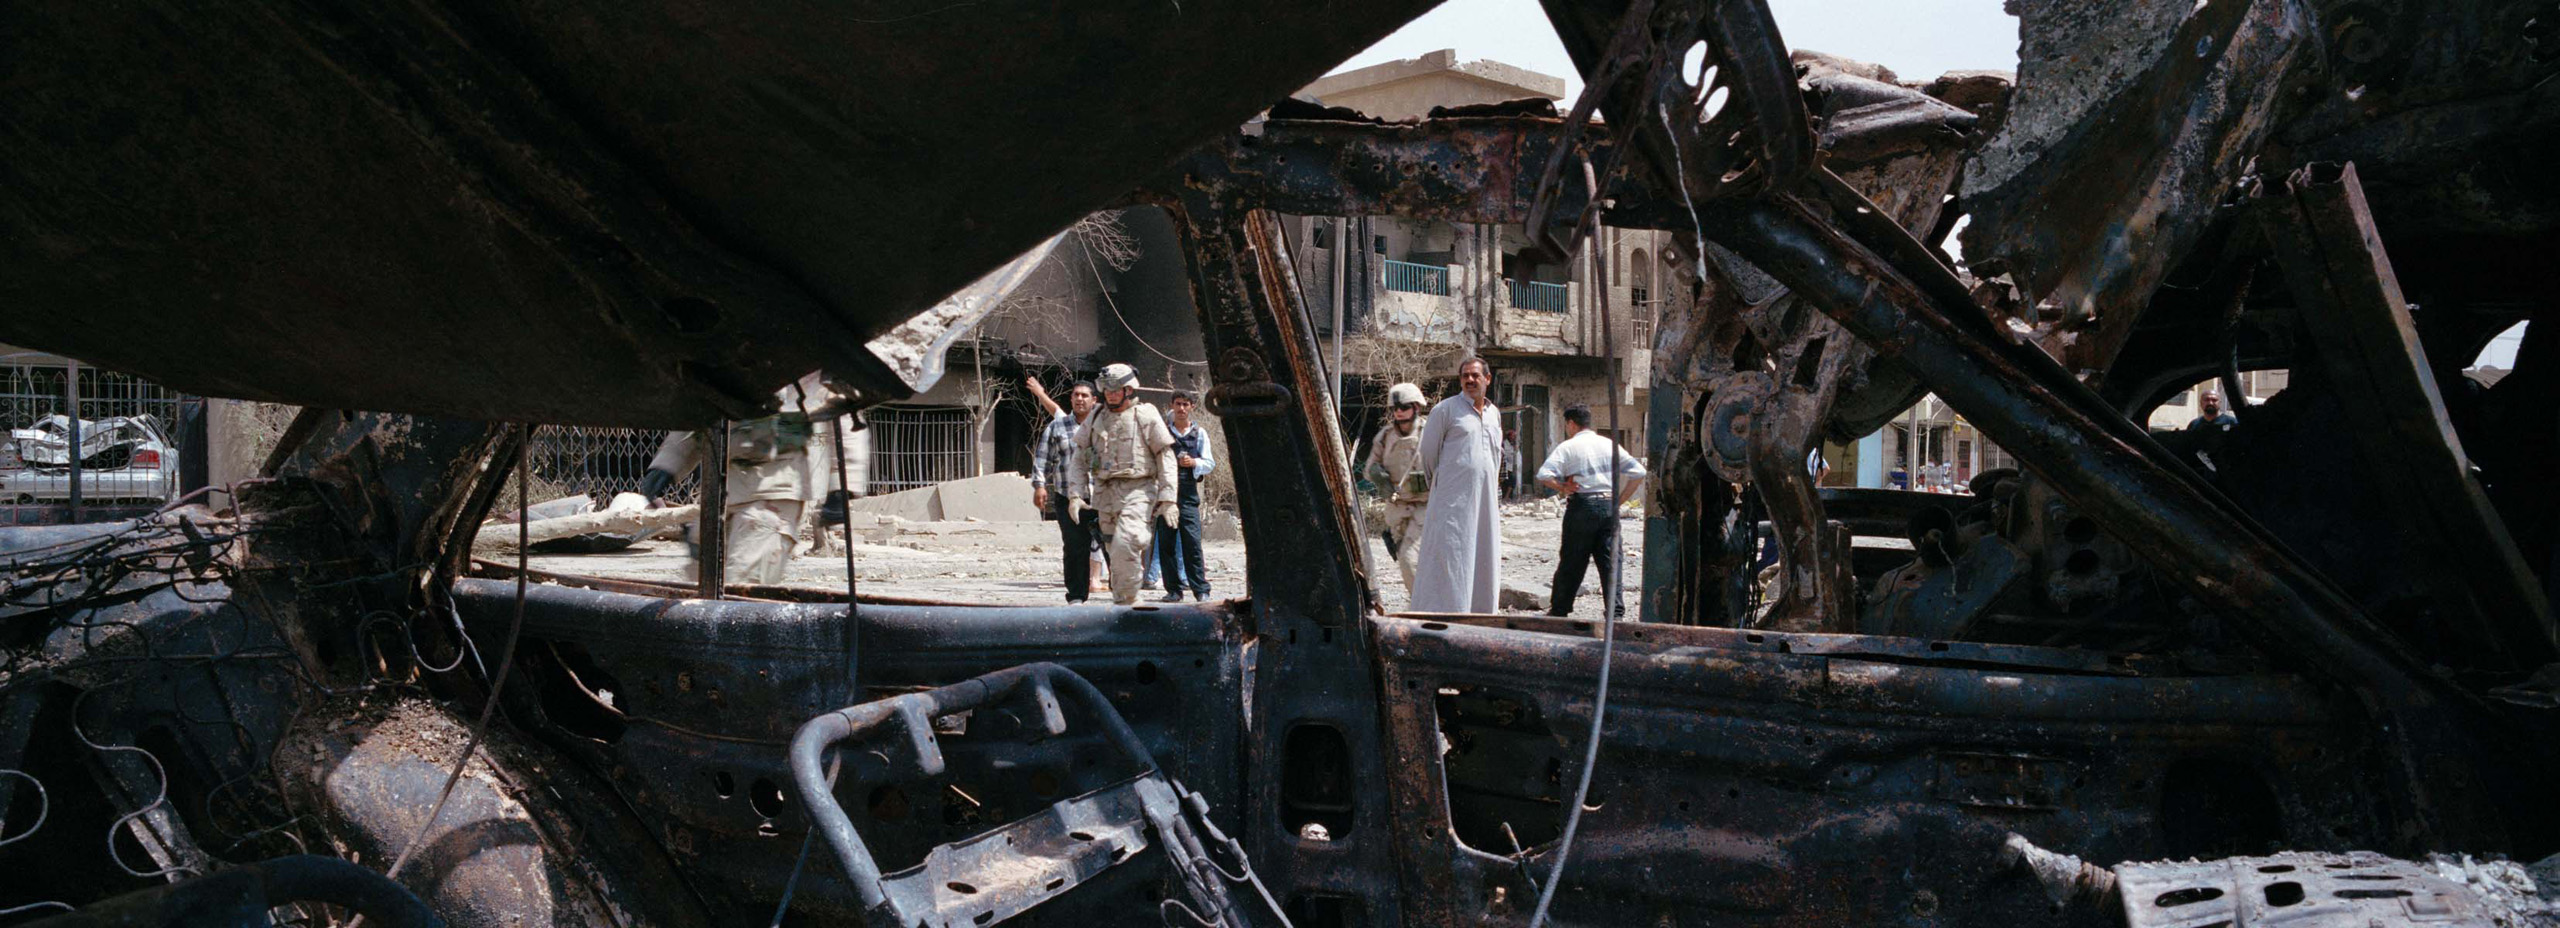 Wreckage of a suicide car bomb in Baghdad, Iraq, 2005.